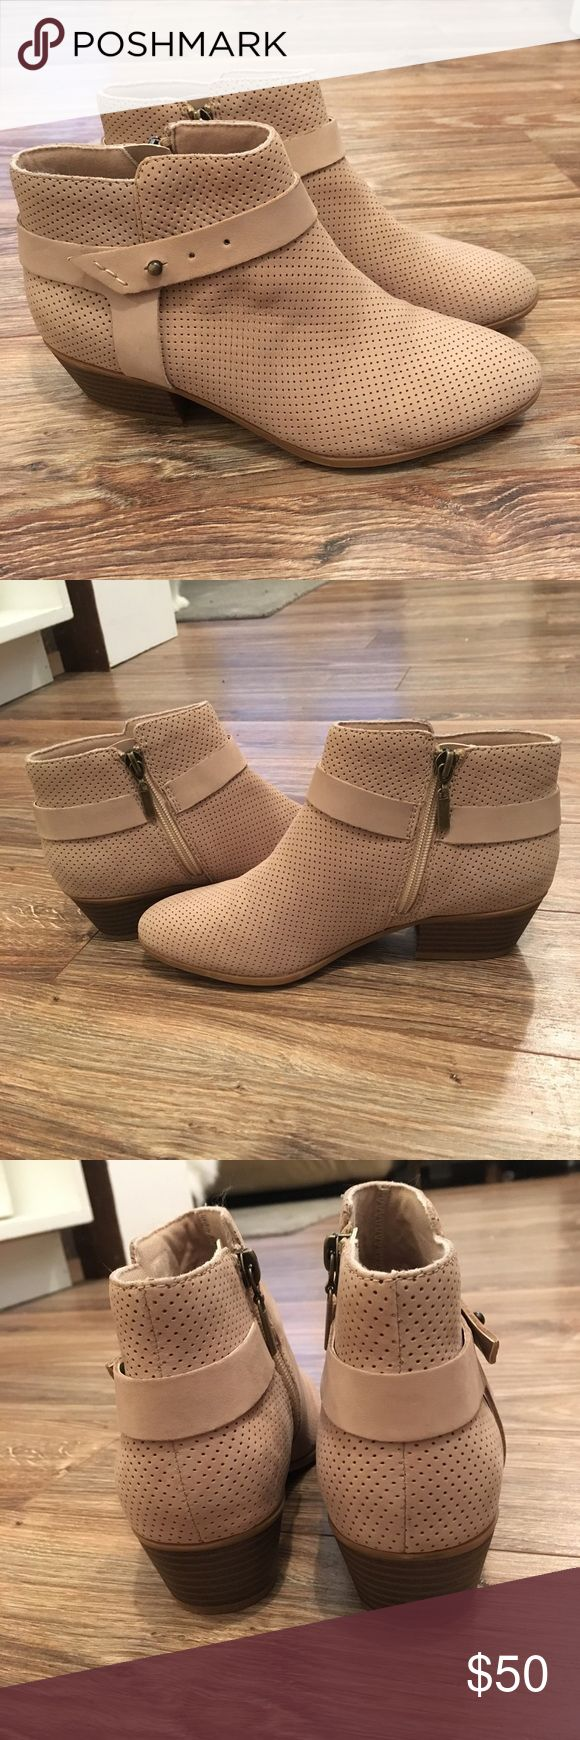 Clark's size 6 Sand colored Bootie Great quality, comfortable bootie!! Tan/ Sand colored. Never been worn outside. One of those things you order online and never end up wearing 😅🤷🏼‍♀️ You can even have the original box! Make me an offer! 😊 Clarks Shoes Ankle Boots & Booties